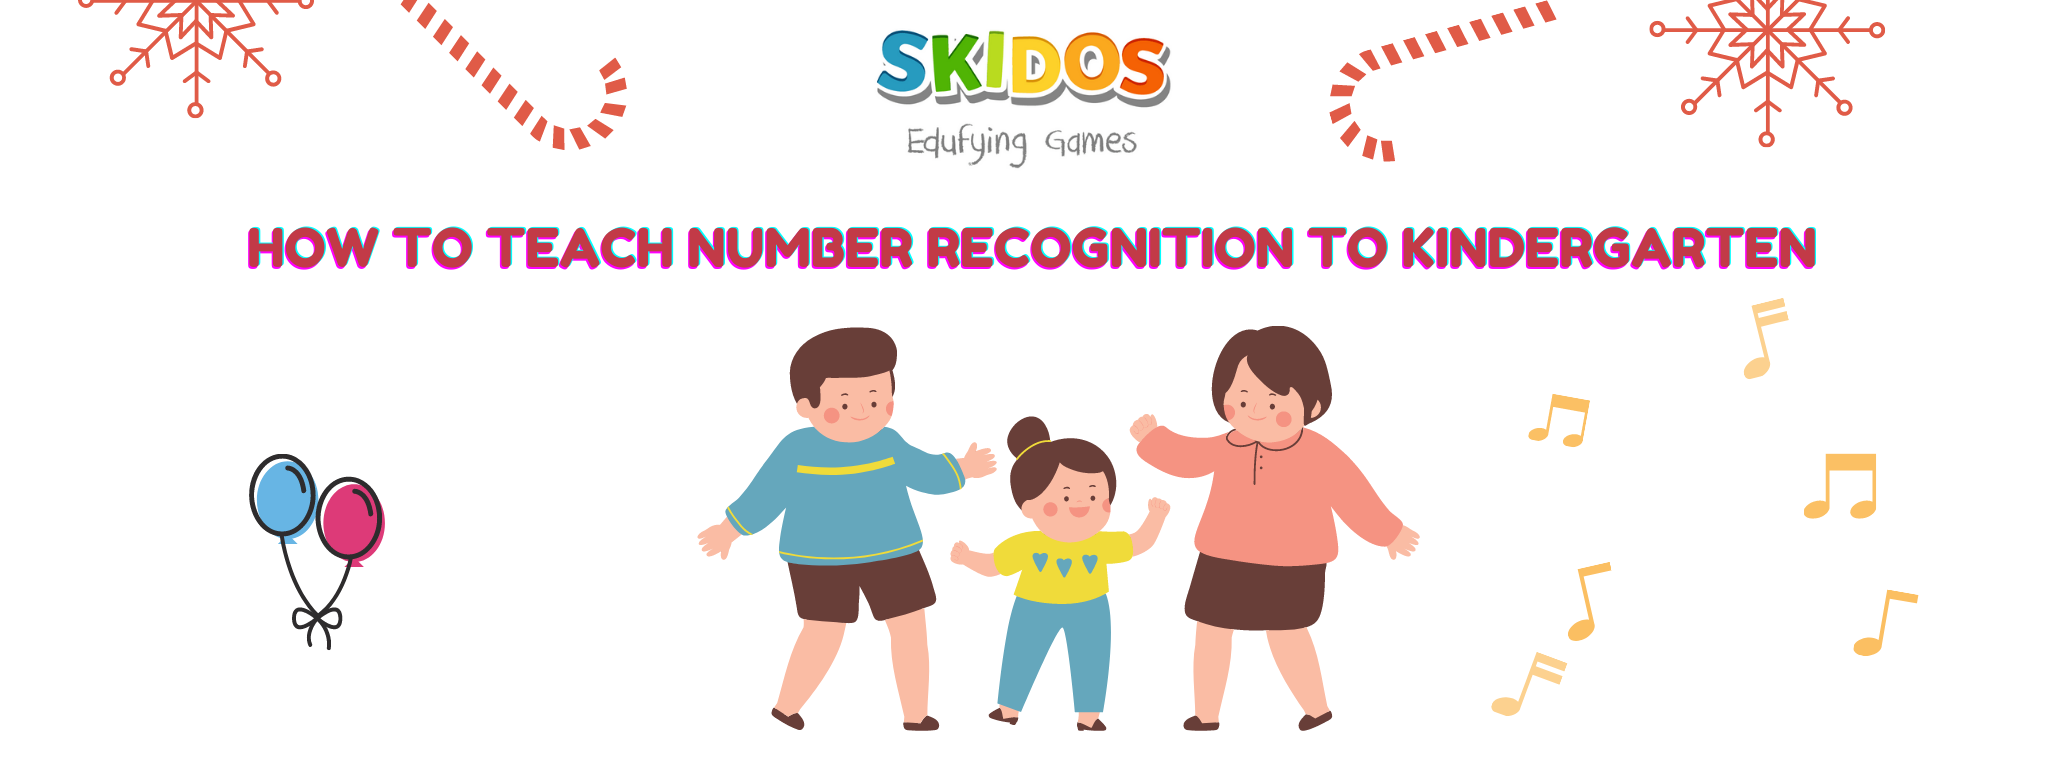 How to teach number recognition to Kindergarten